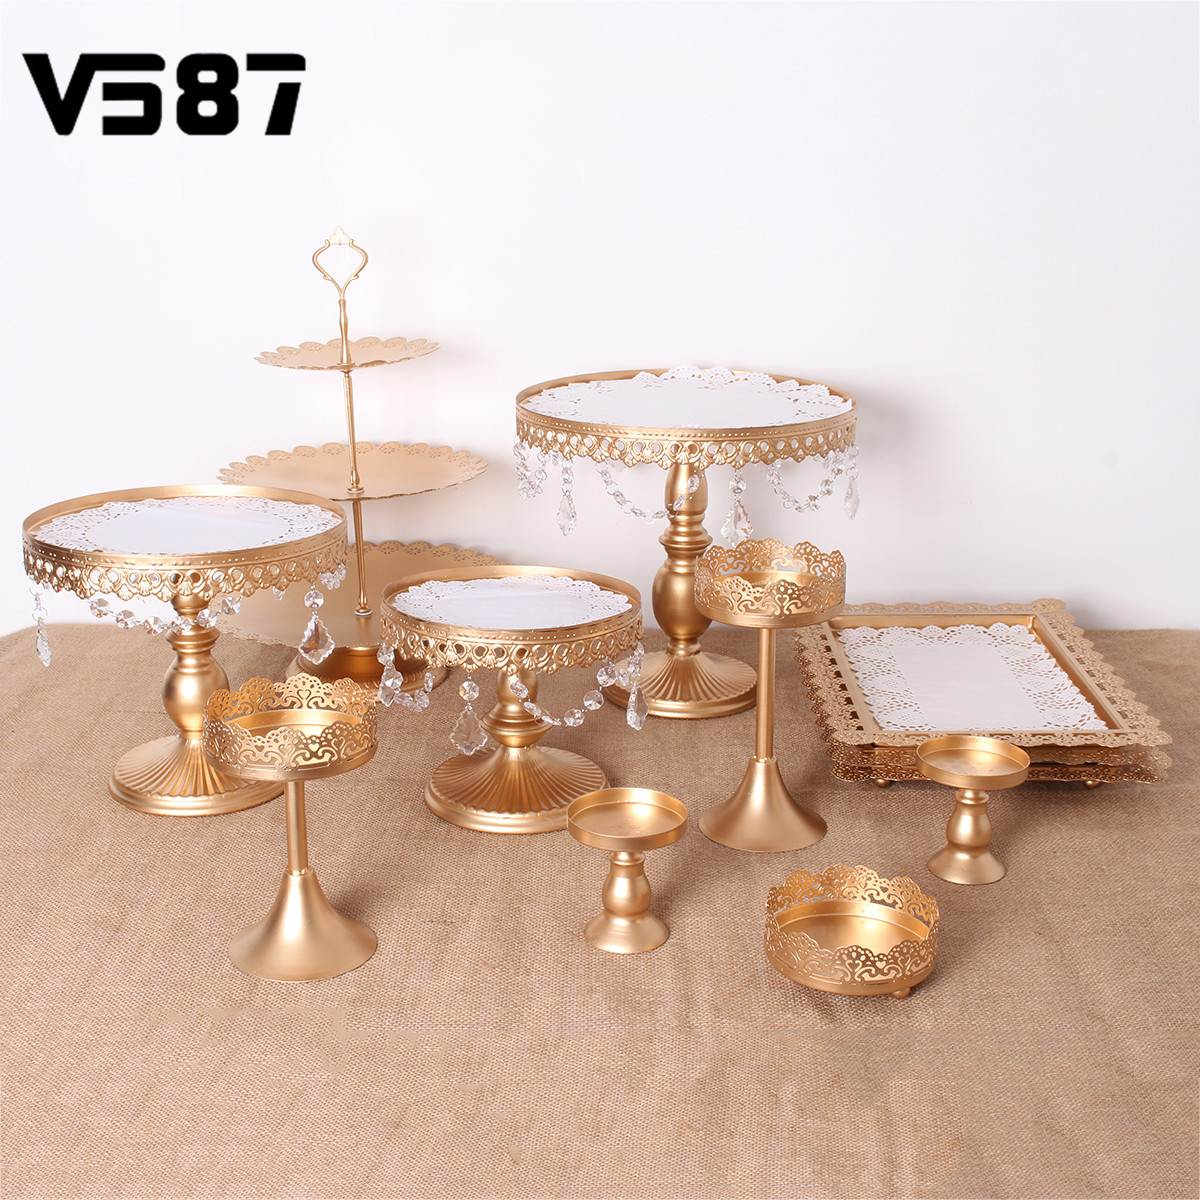 White Gold 12PCS Crystal Metal Cake Stand Set Holder Cupcake Stand Tray Birthday Wedding Party Dessert Display Decoration GiftsWhite Gold 12PCS Crystal Metal Cake Stand Set Holder Cupcake Stand Tray Birthday Wedding Party Dessert Display Decoration Gifts